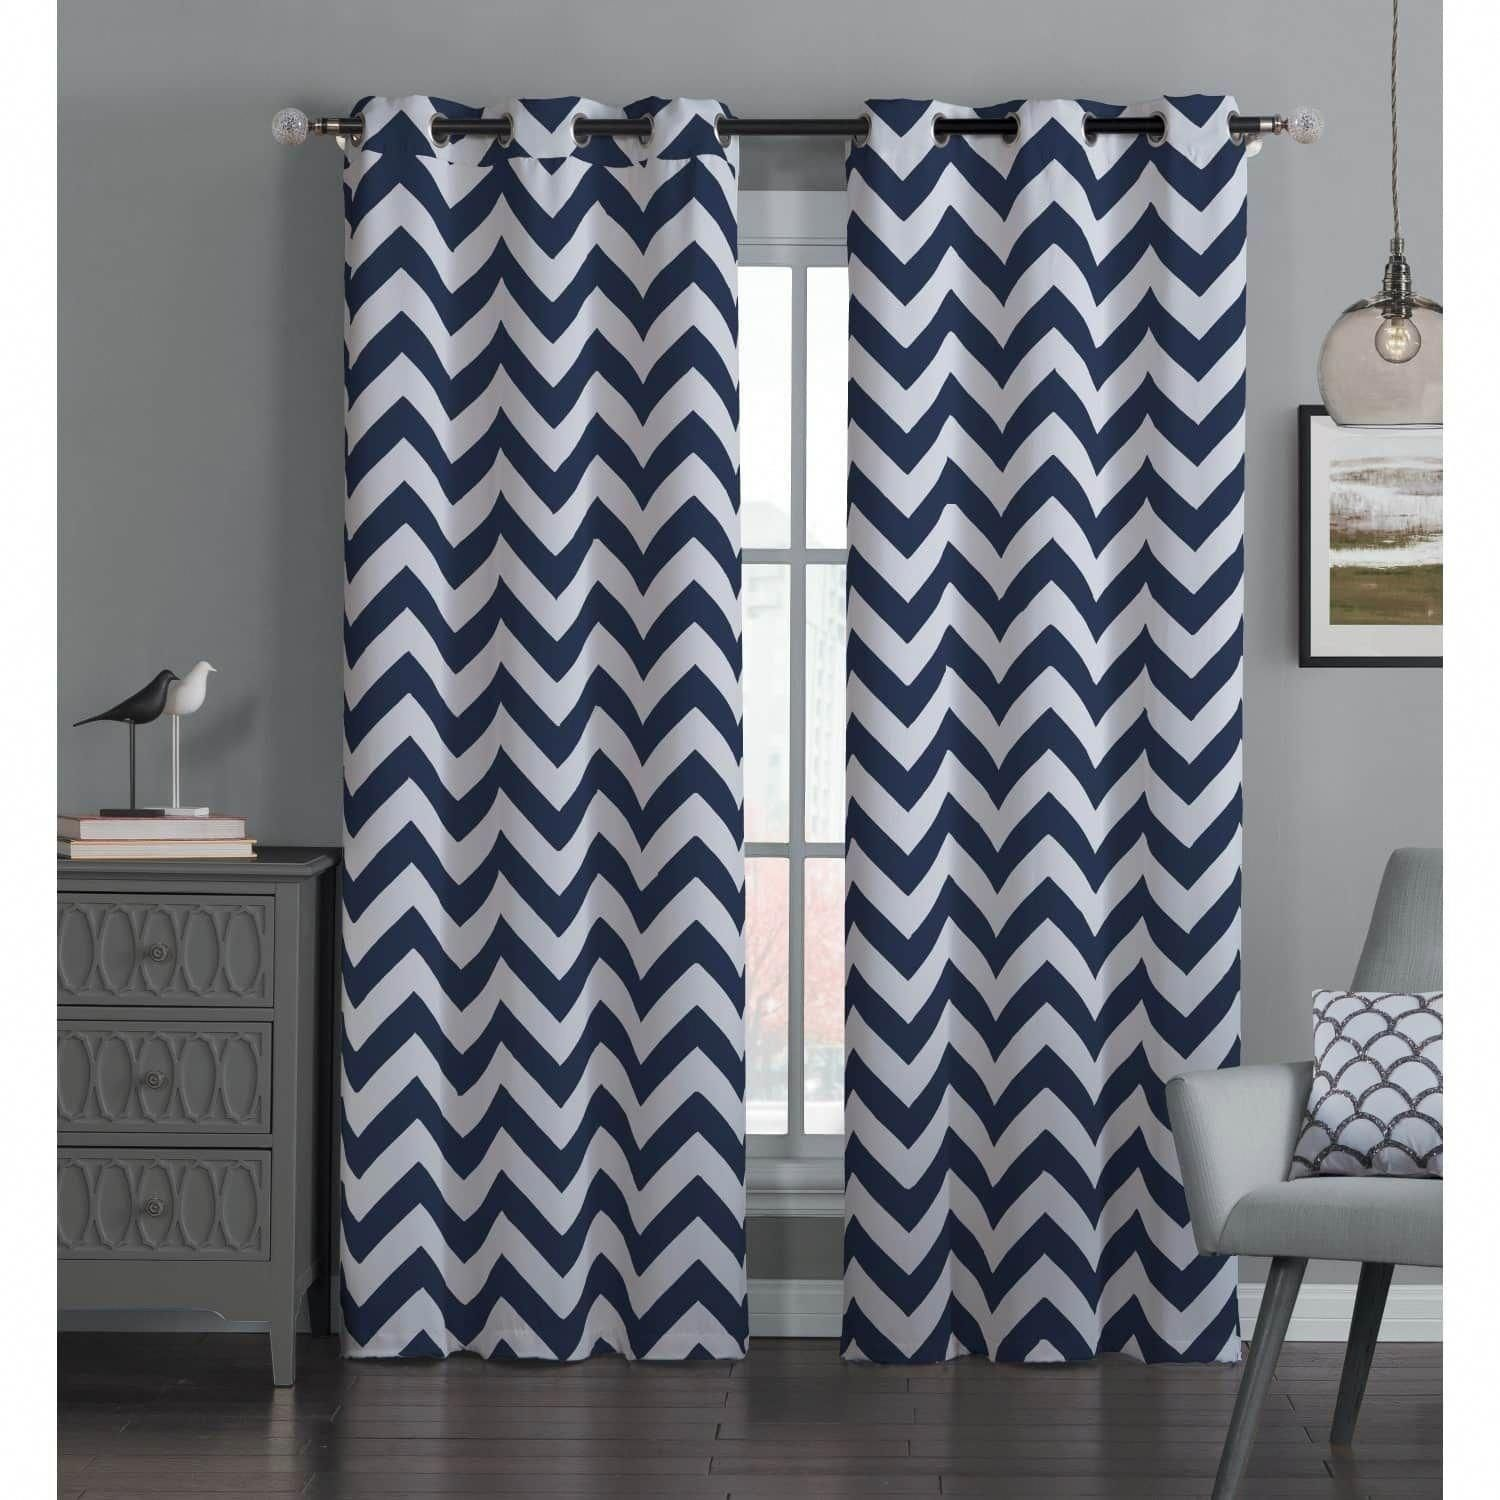 Avondale manor blackout chevron curtain panel pair navy blue